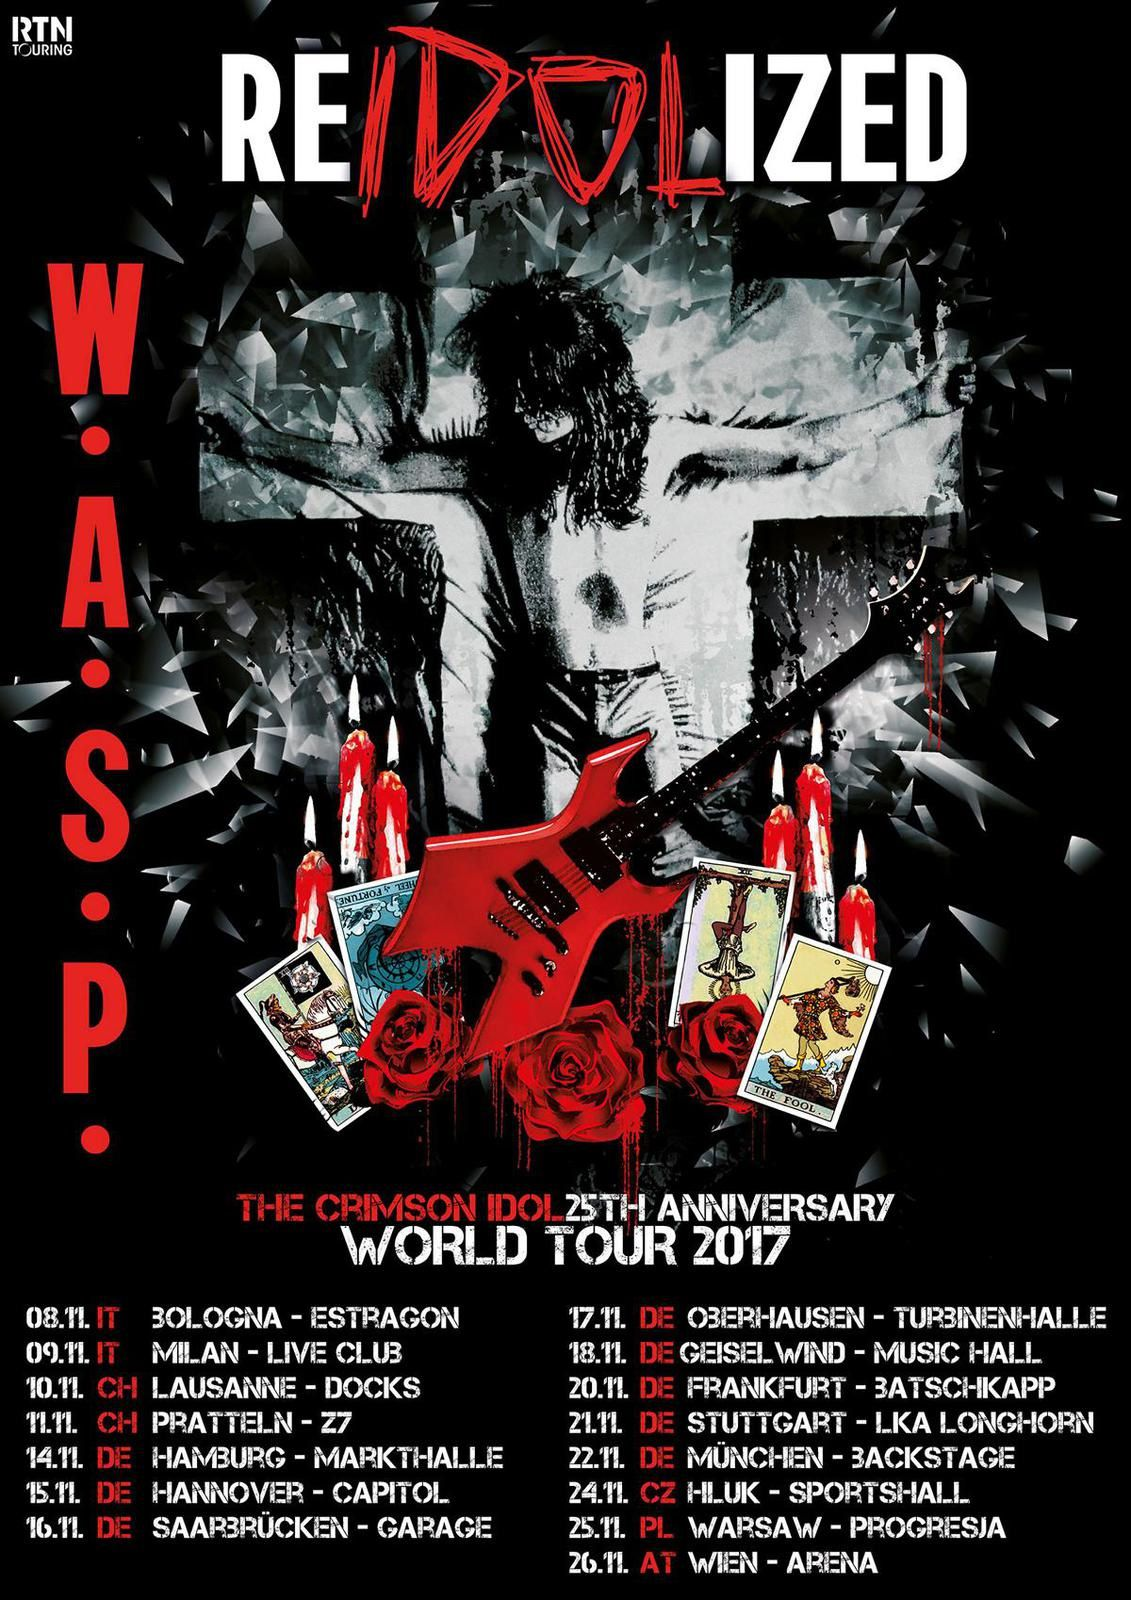 W.A.S.P. tour dates for the &quot&#x3B;The Crimson Idol&quot&#x3B; - 25 years anniversary tour